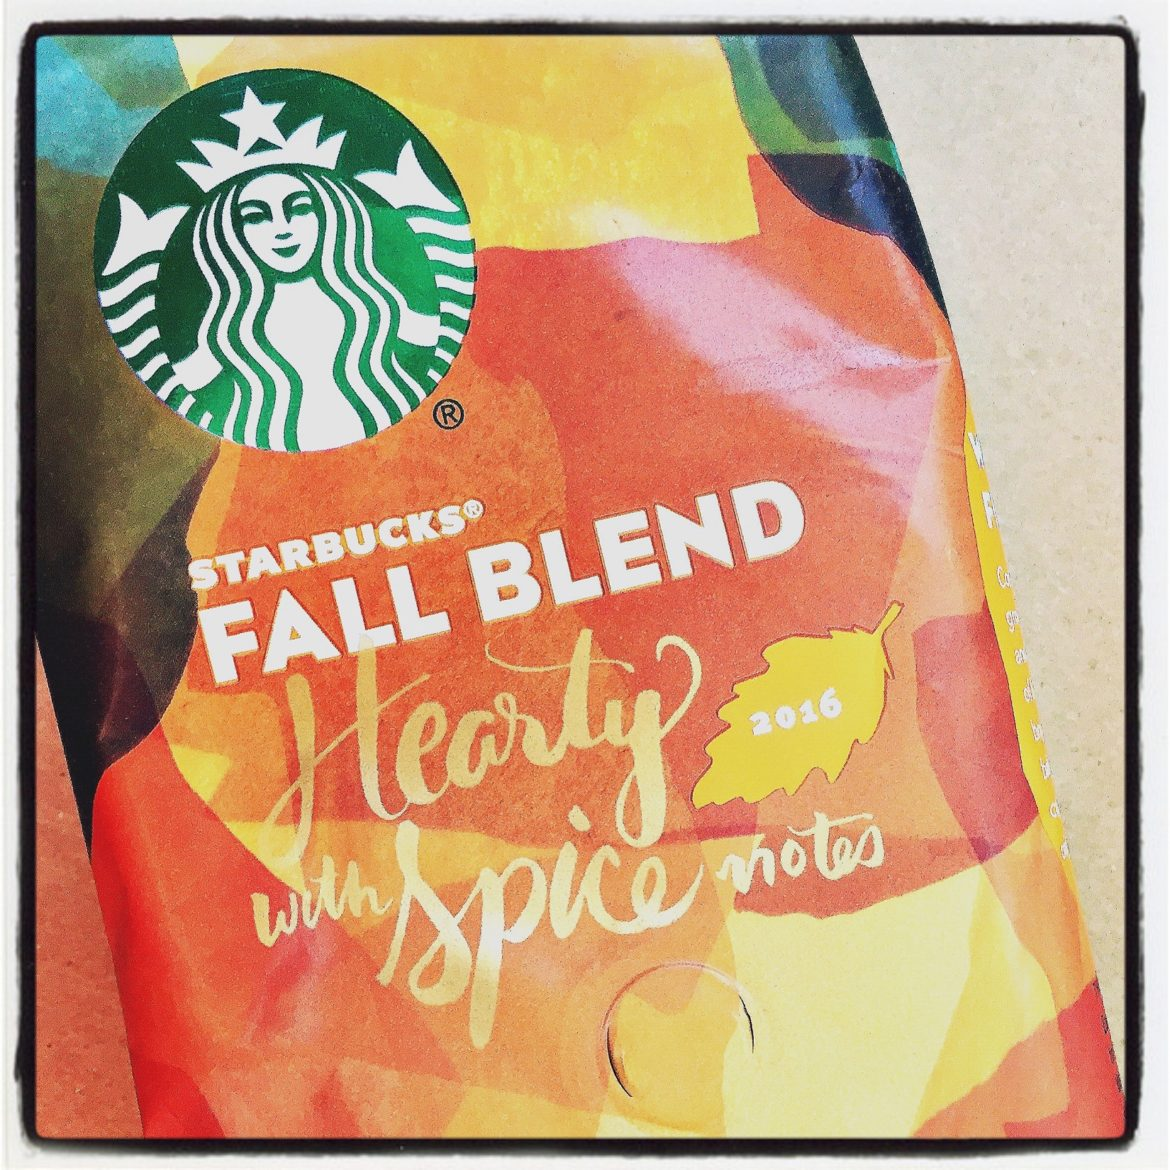 Lots of people don't know about Fall Blend. It's an unknown Starbucks gem.